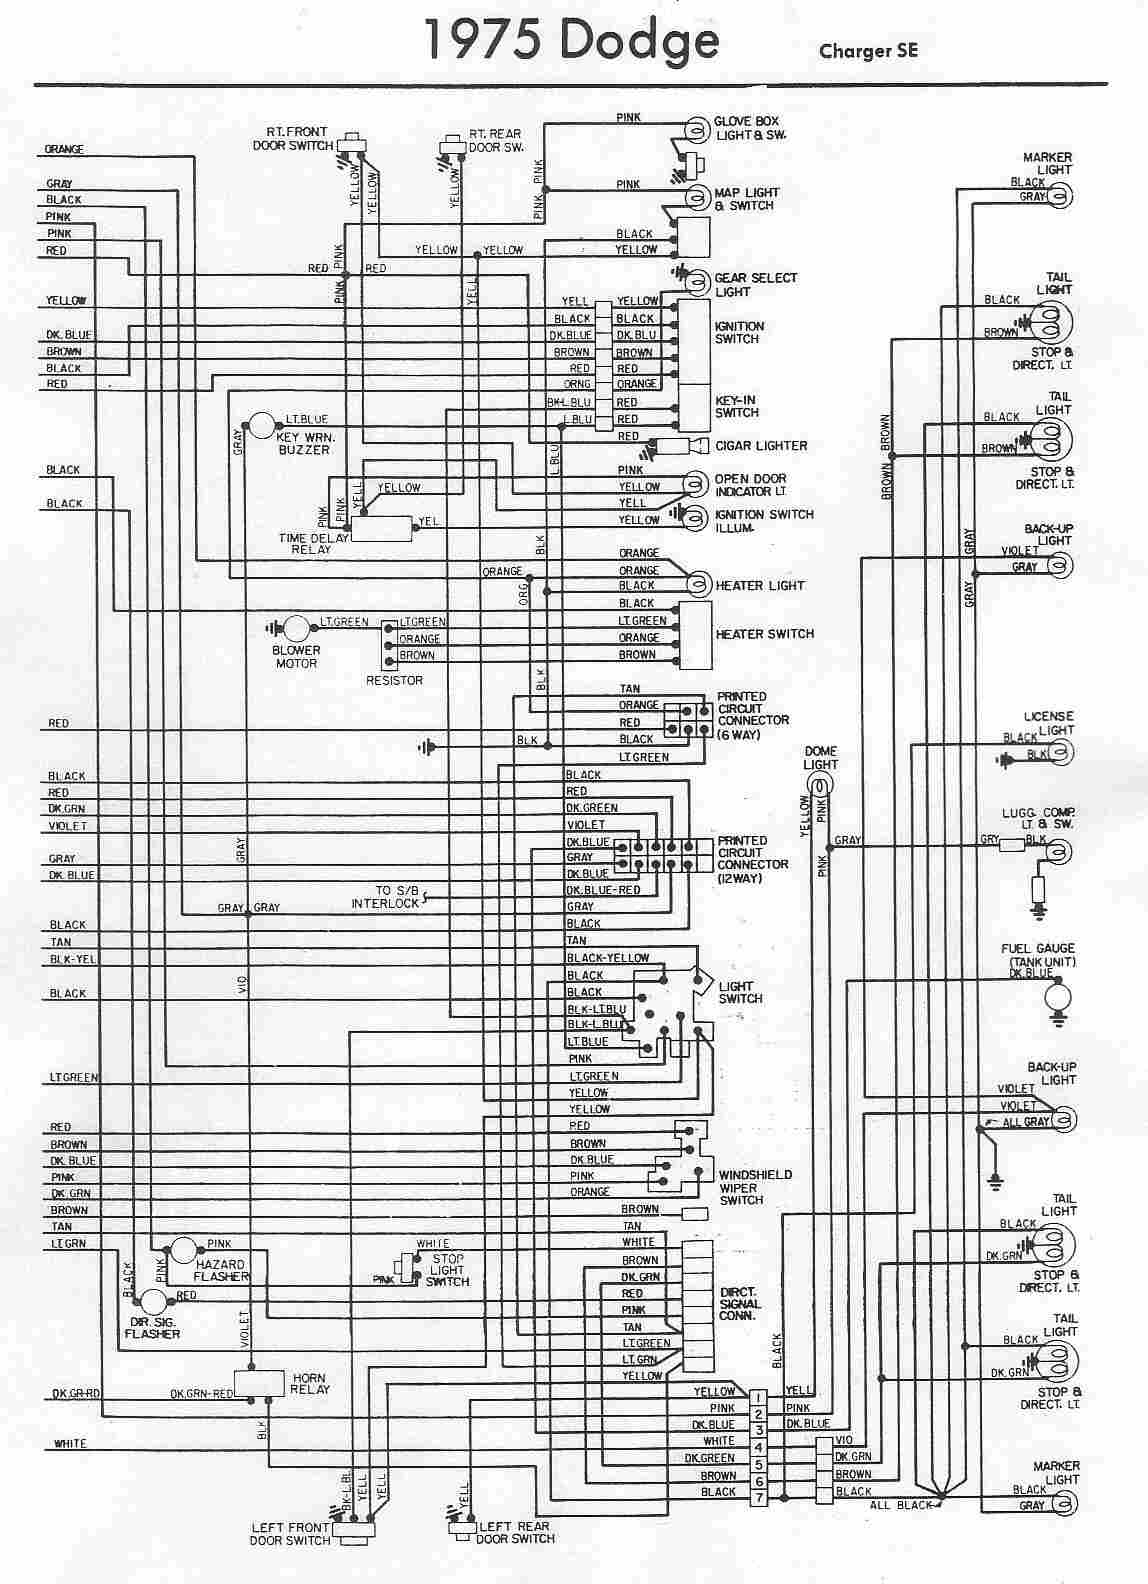 electrical wiring diagram of 1975 dodge charger?t=1508404771 dodge car manuals, wiring diagrams pdf & fault codes daimler sp250 wiring diagram at nearapp.co